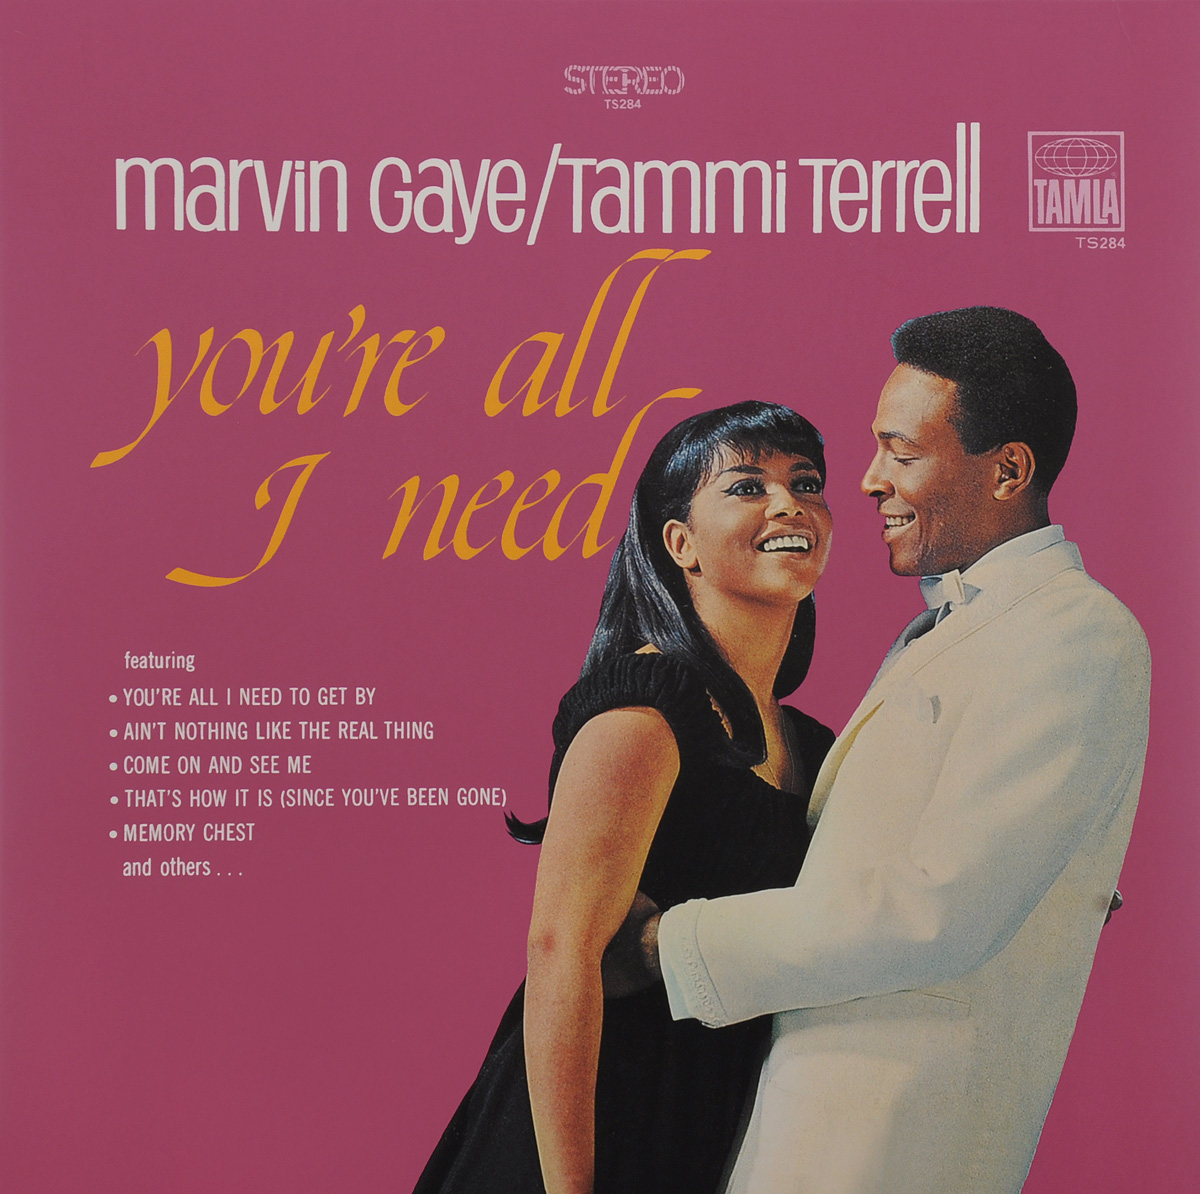 Марвин Гэй,Тамми Тэррелл Marvin Gaye & Tammi Terrell. You're All I Need (LP) марвин гэй marvin gaye volume jne 1961 1965 7 lp